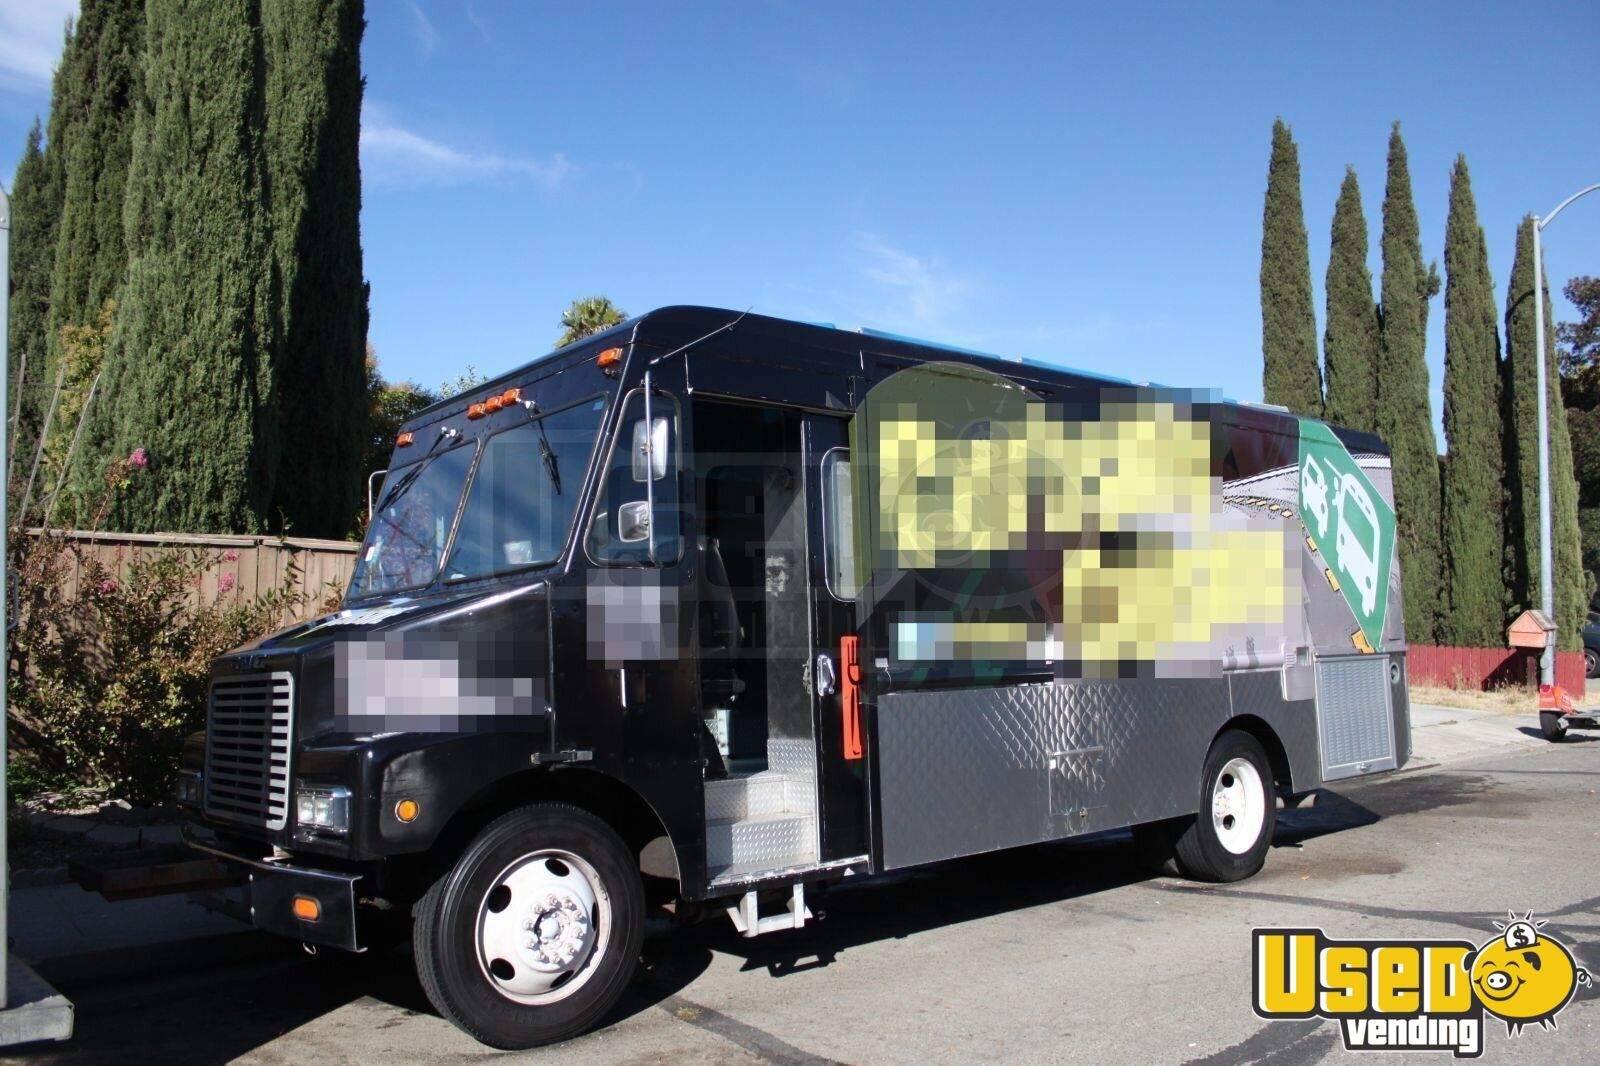 26 39 food truck mobile kitchen food truck for sale in california. Black Bedroom Furniture Sets. Home Design Ideas